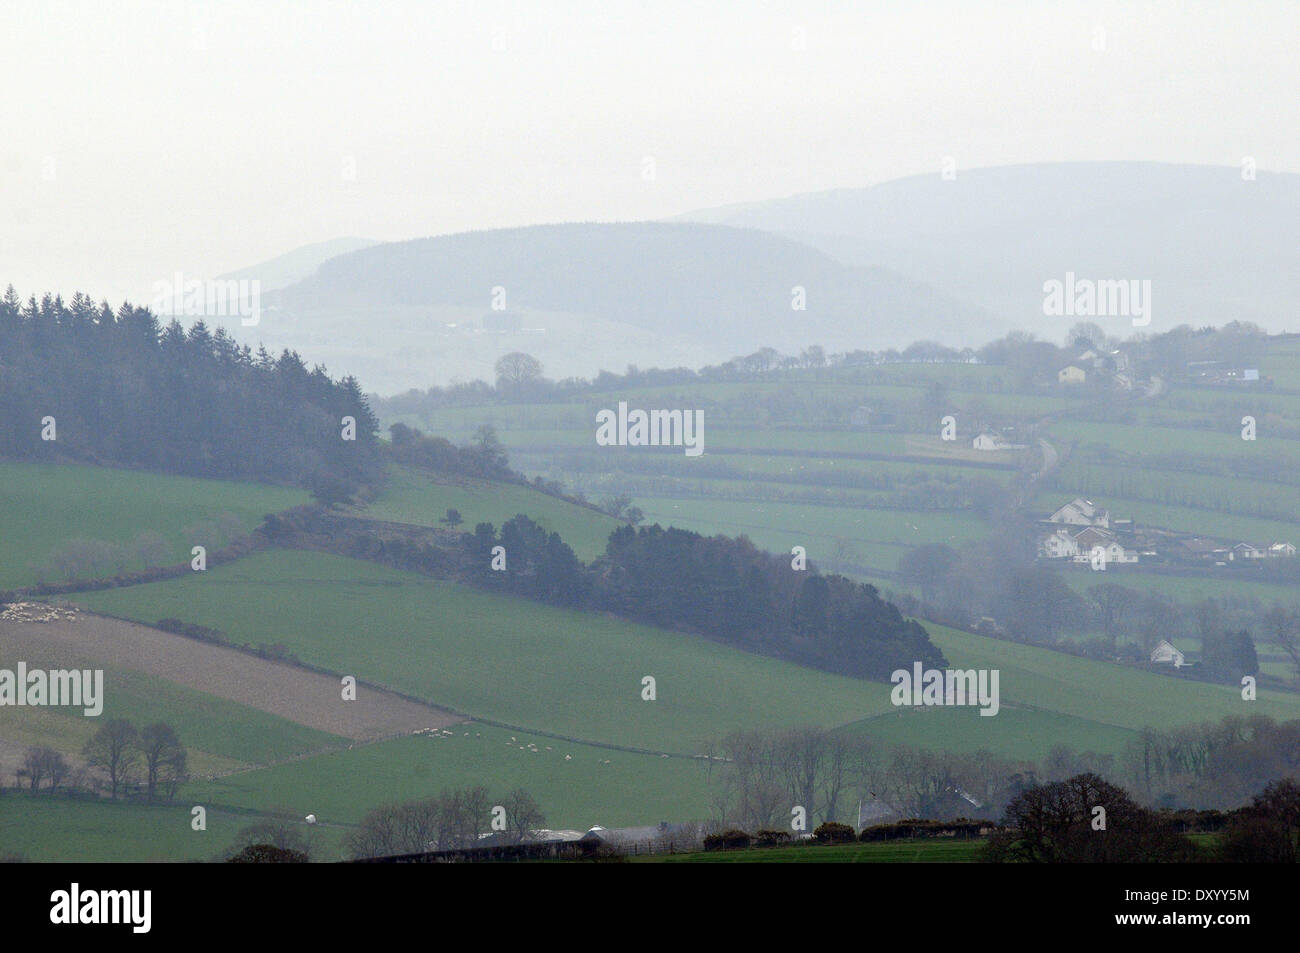 Aberystwyth, Wales, UK. 2nd April, 2014. - Mist and murk conceals the Cambrian Mountains after days of fine sunny Stock Photo